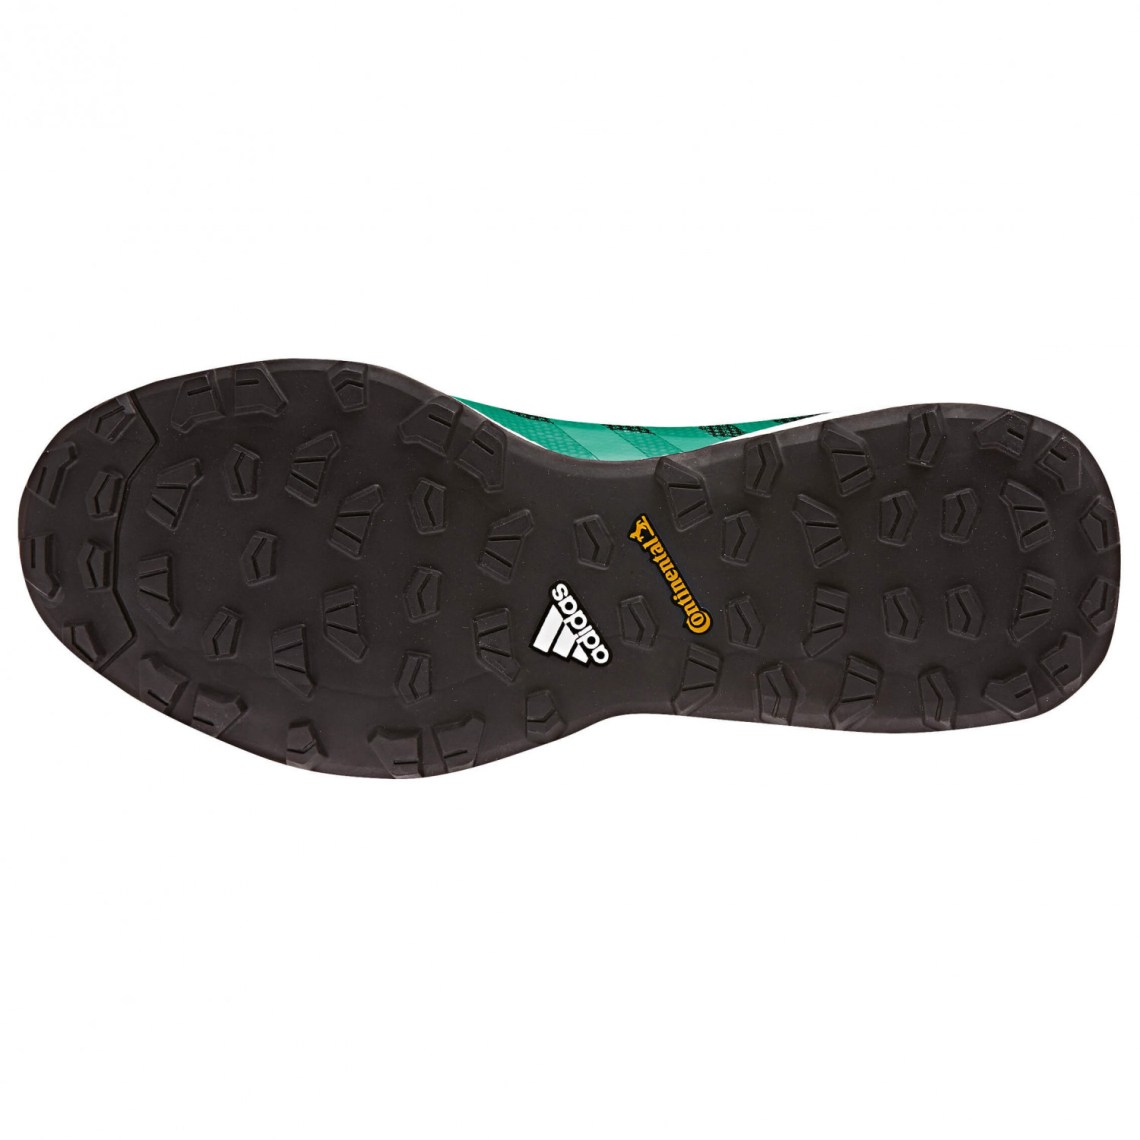 Adidas Agravic 7